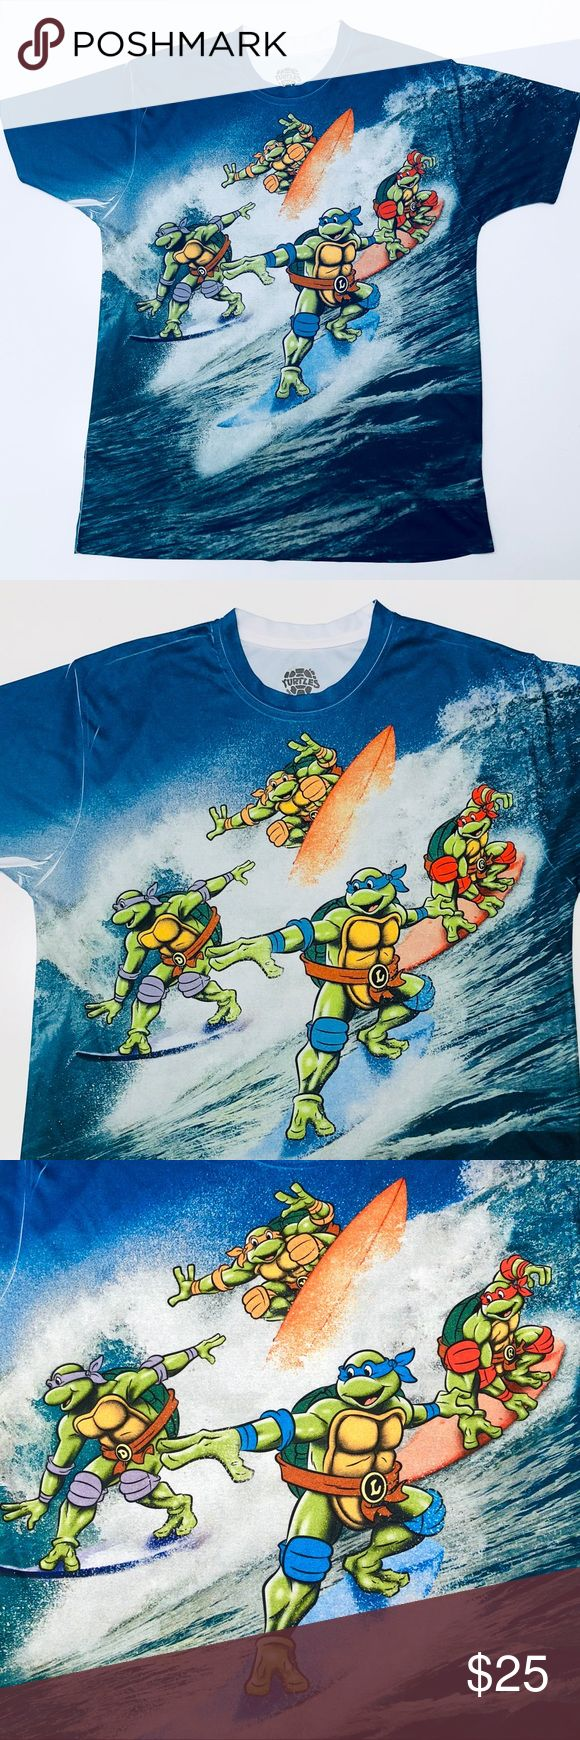 Ninja Turtles Graphic Tee Shredder Surfing Shirt L Teenage Mutant Ninja Turtles 2-Sided Graphic Tee. Shredder Surfing on the back! Beautiful Print Shirt front AND back! Nickelodeon Shirts Tees - Short Sleeve